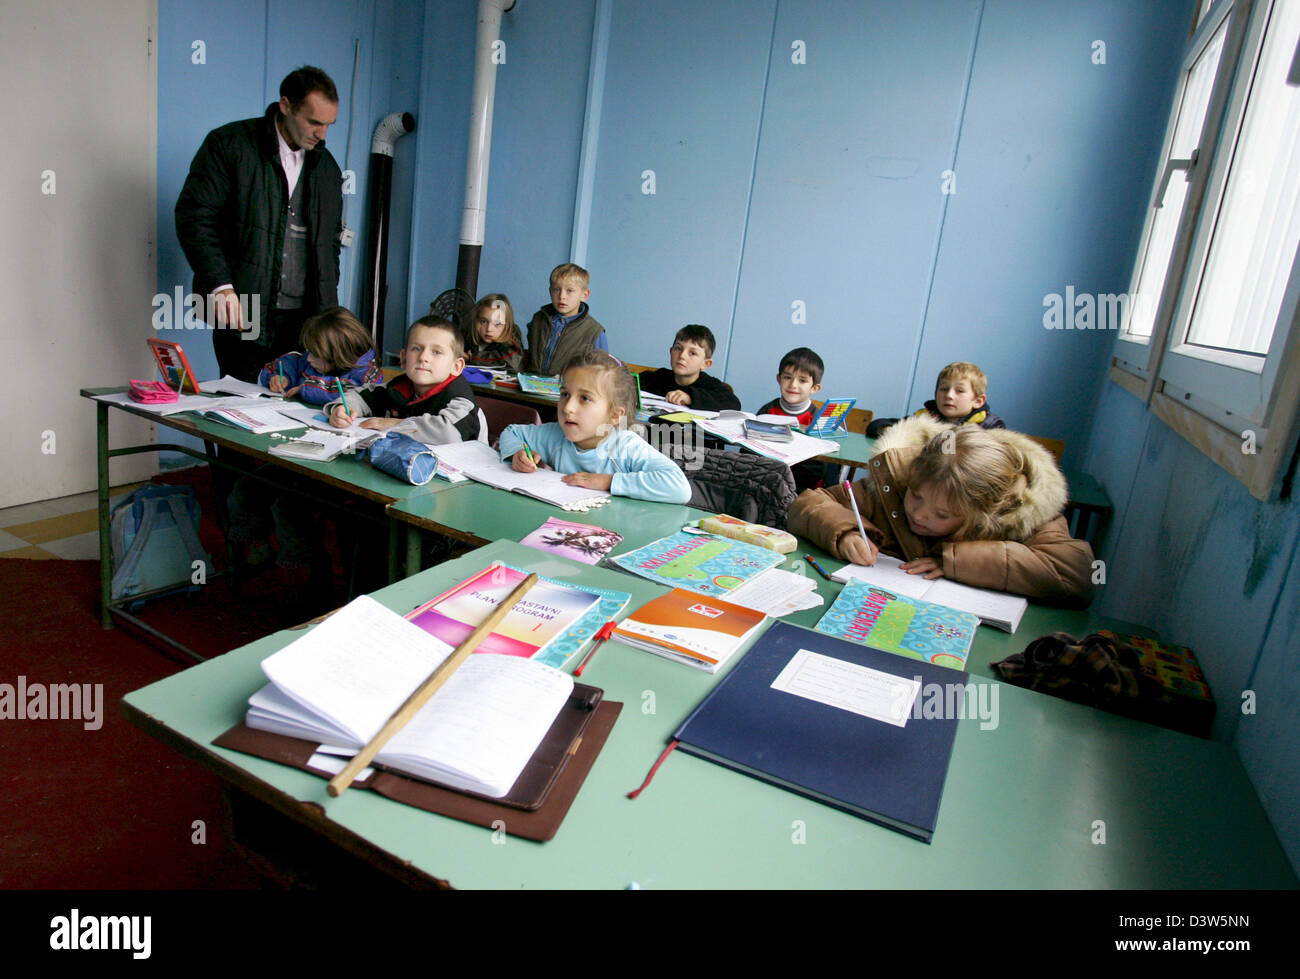 The picture shows  a teacher and his pupils in a school classroom in Nebregoste, Republic of Serbia, Wednesday, - Stock Image